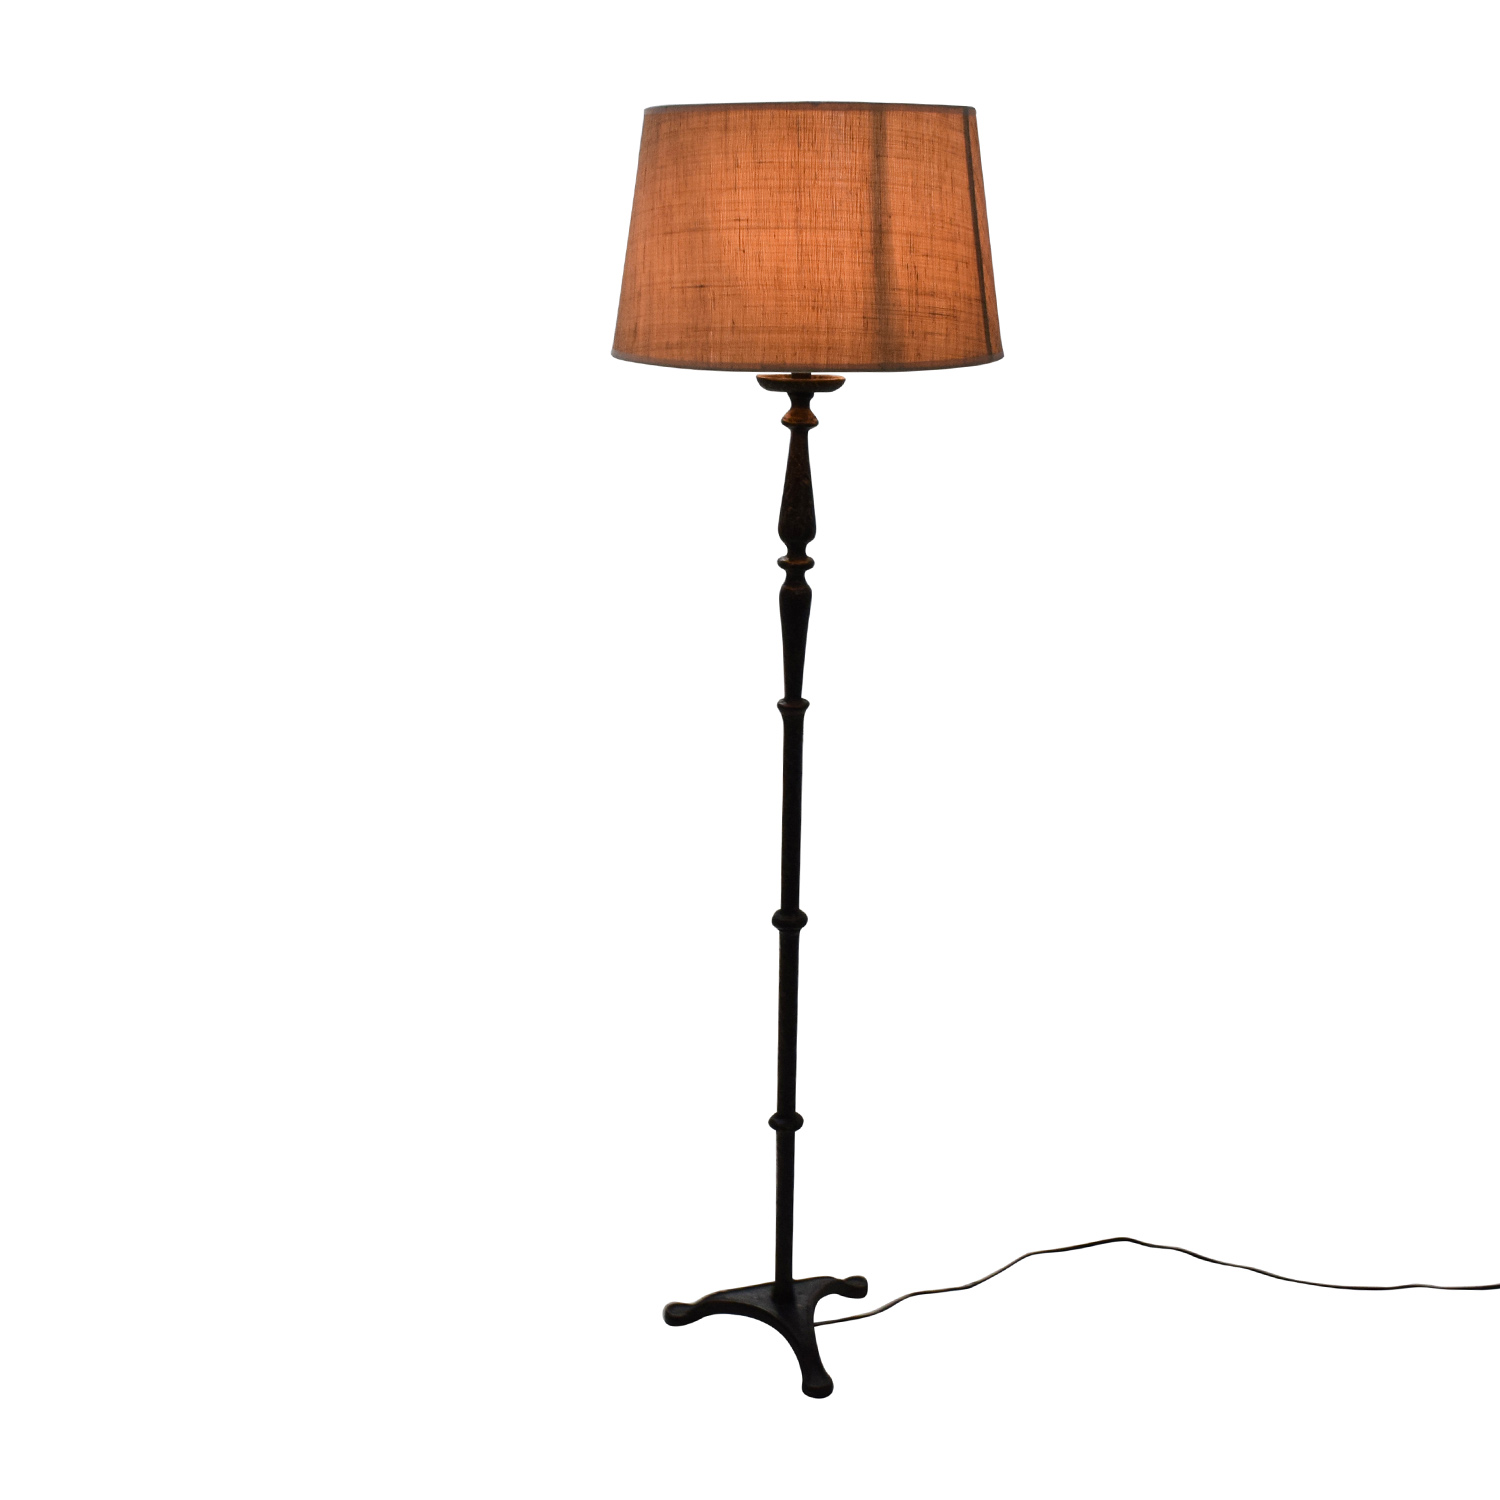 Pottery Barn Pottery Barn Floor Lamp Decor